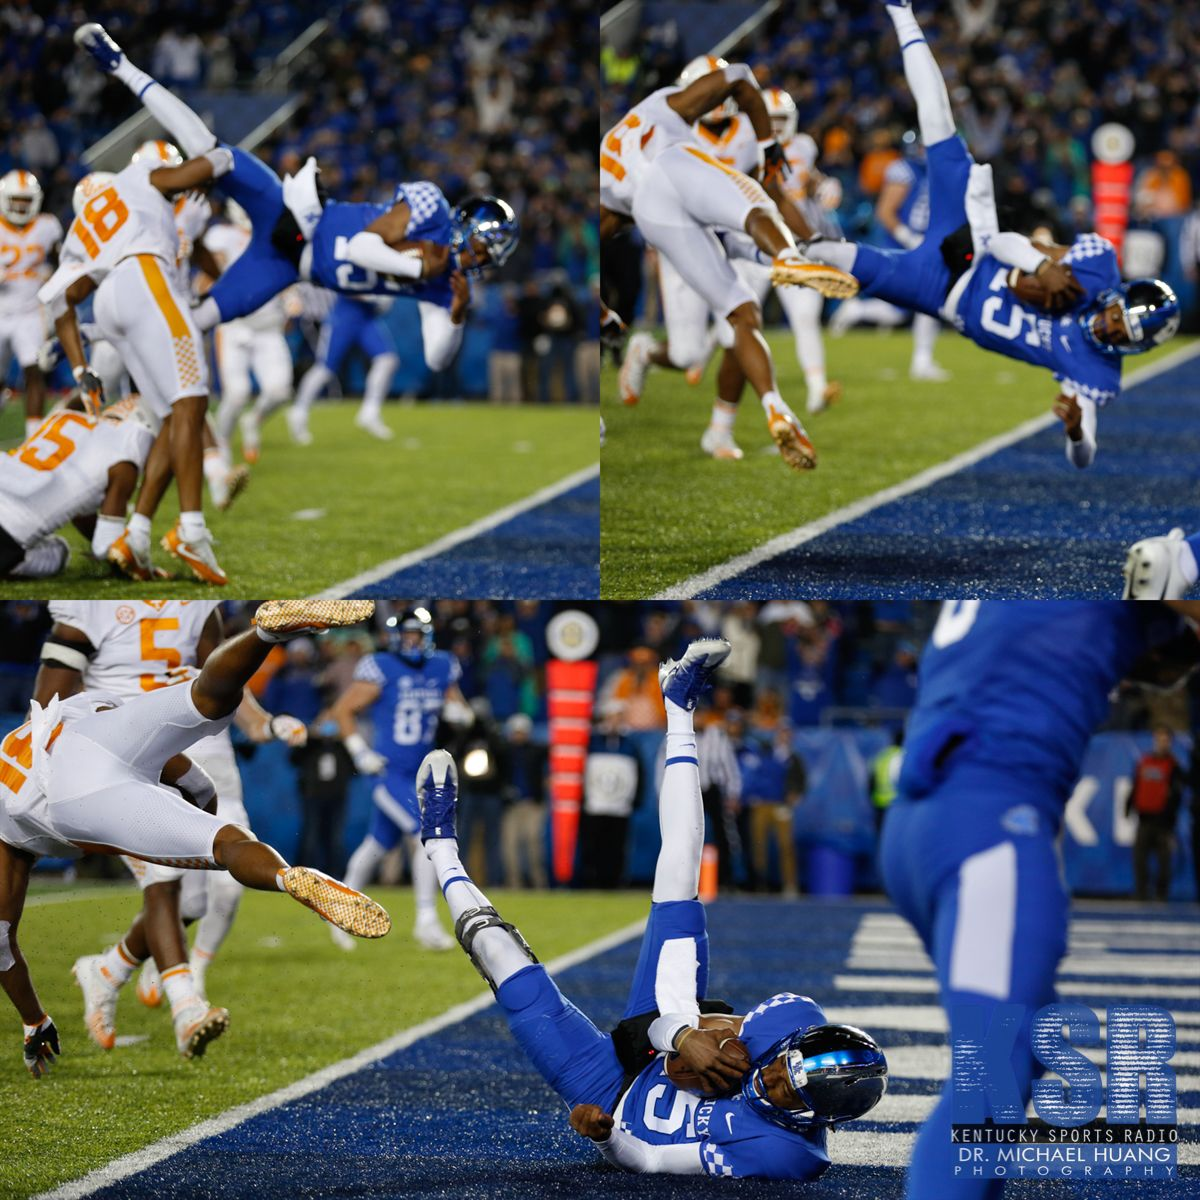 WATCH The three big plays that sealed Kentucky's win